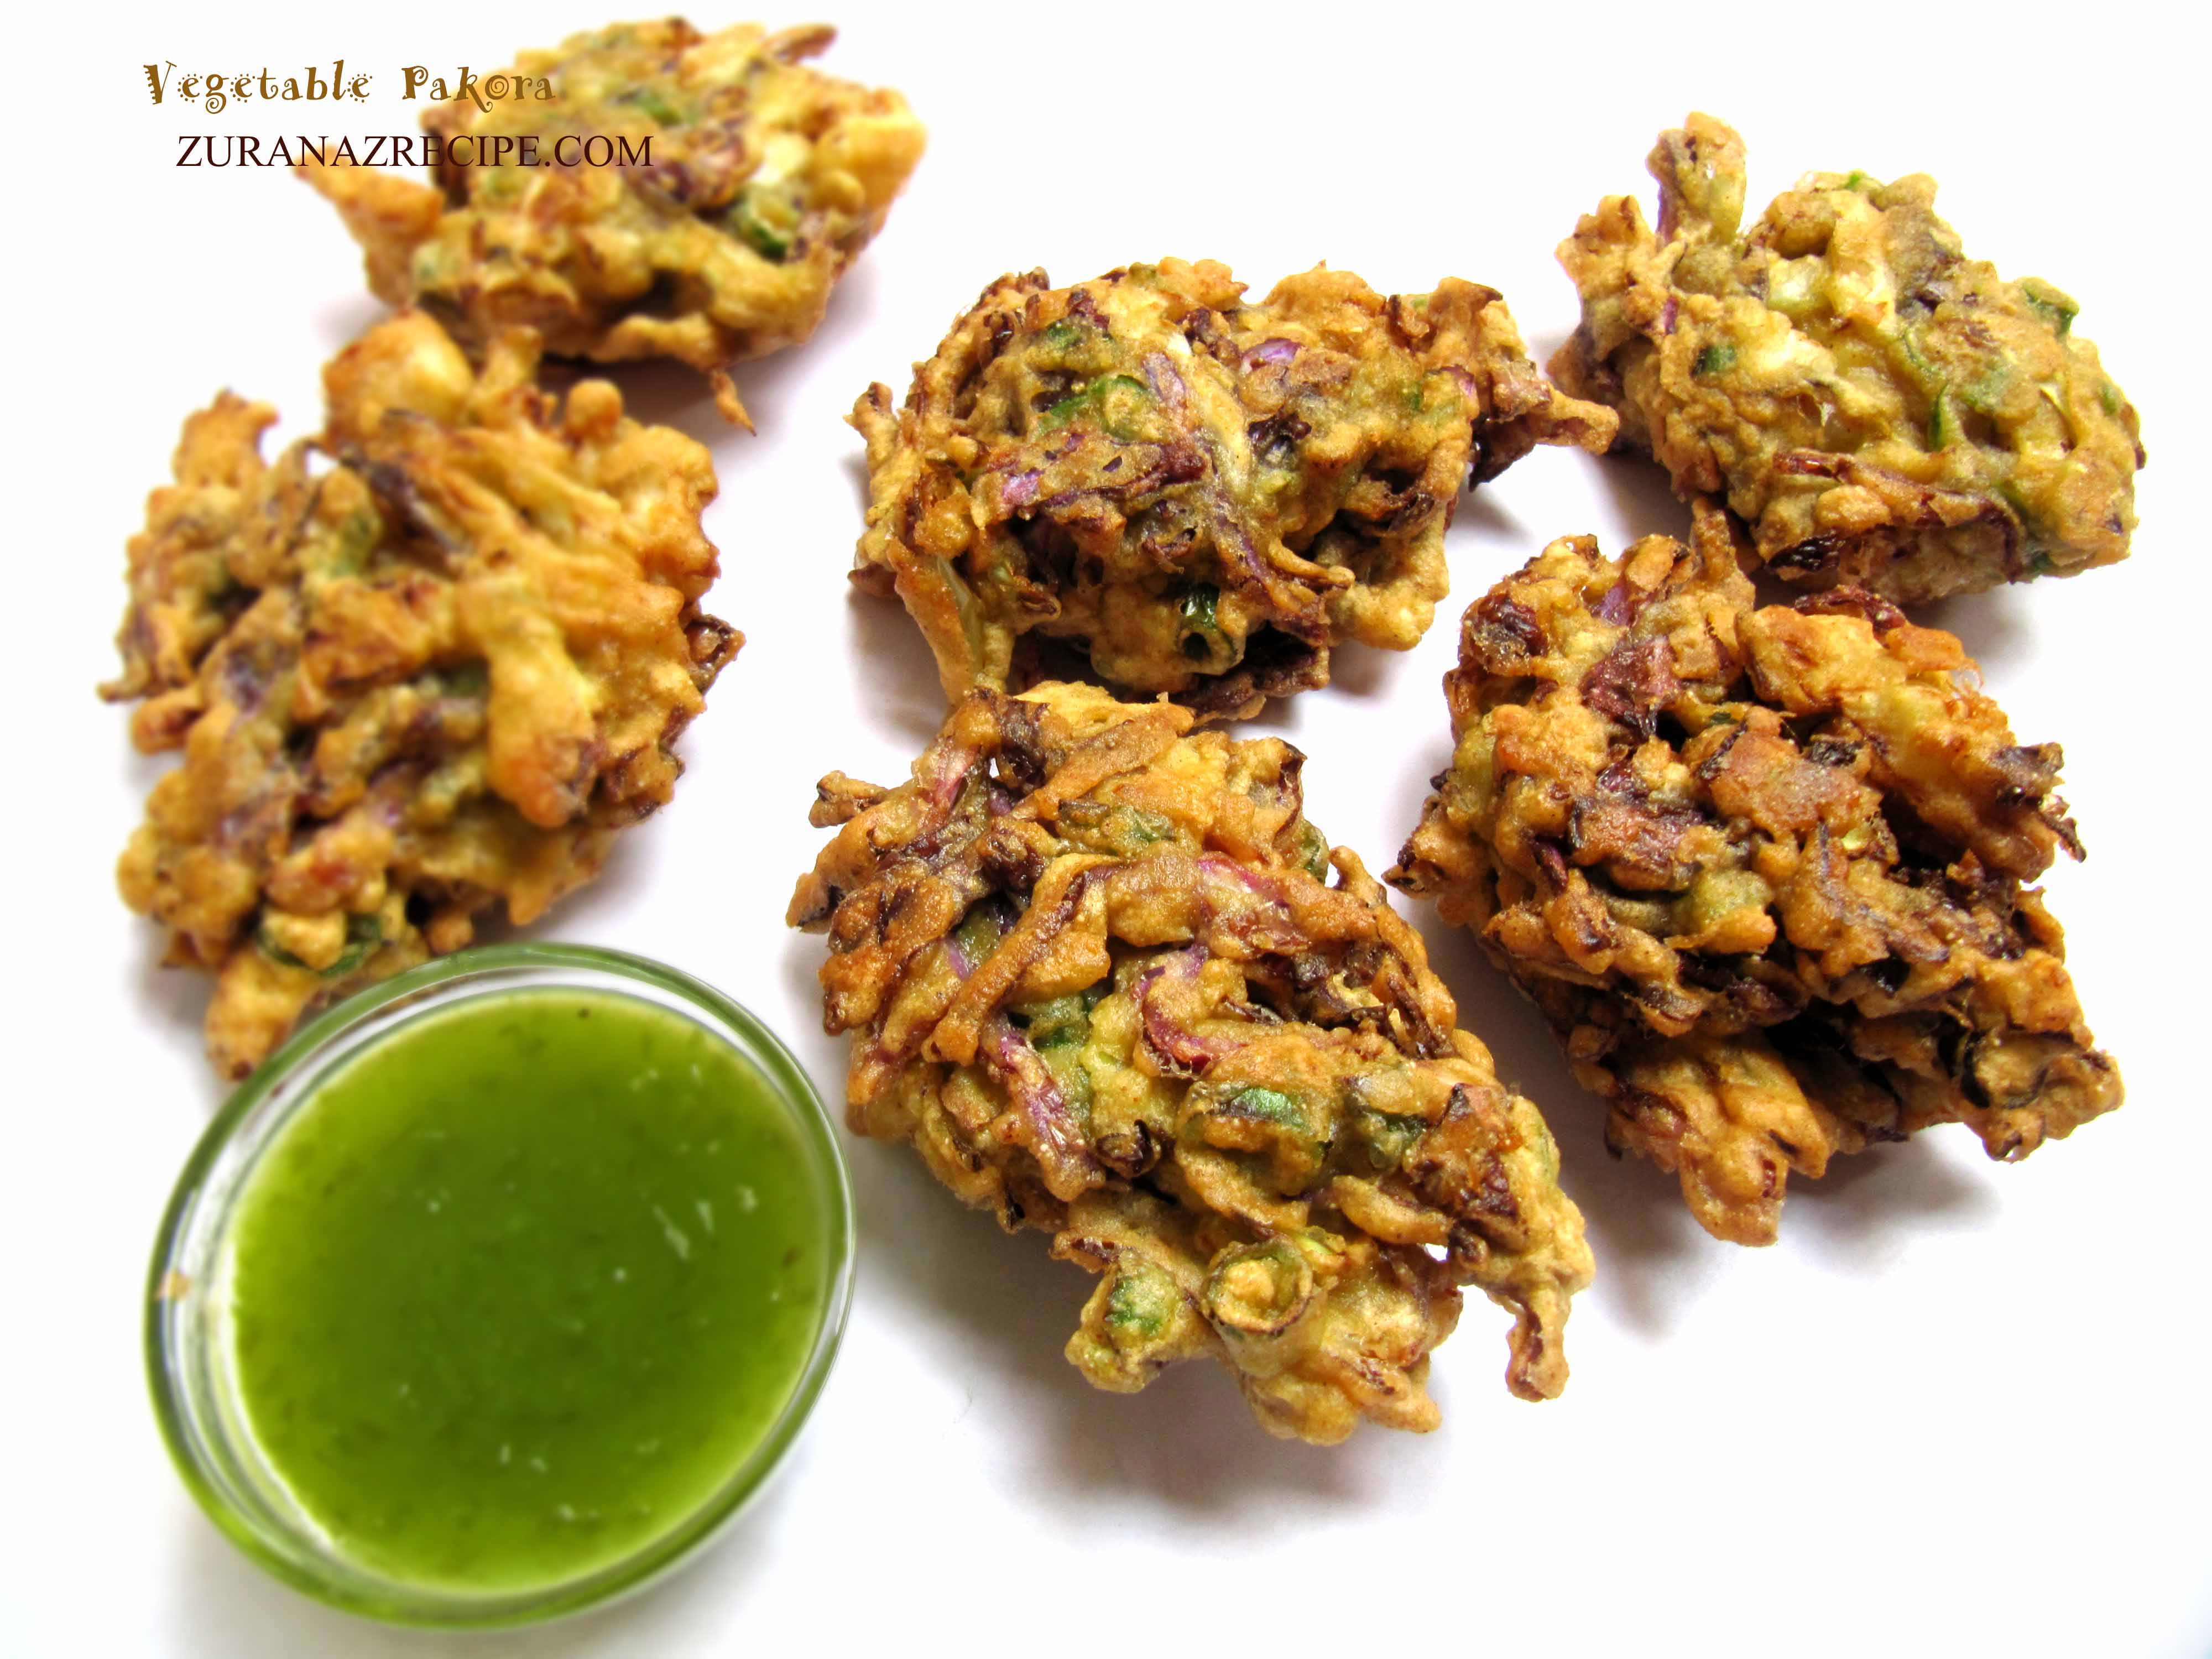 Shobji Pakora/Vegetable Pakora